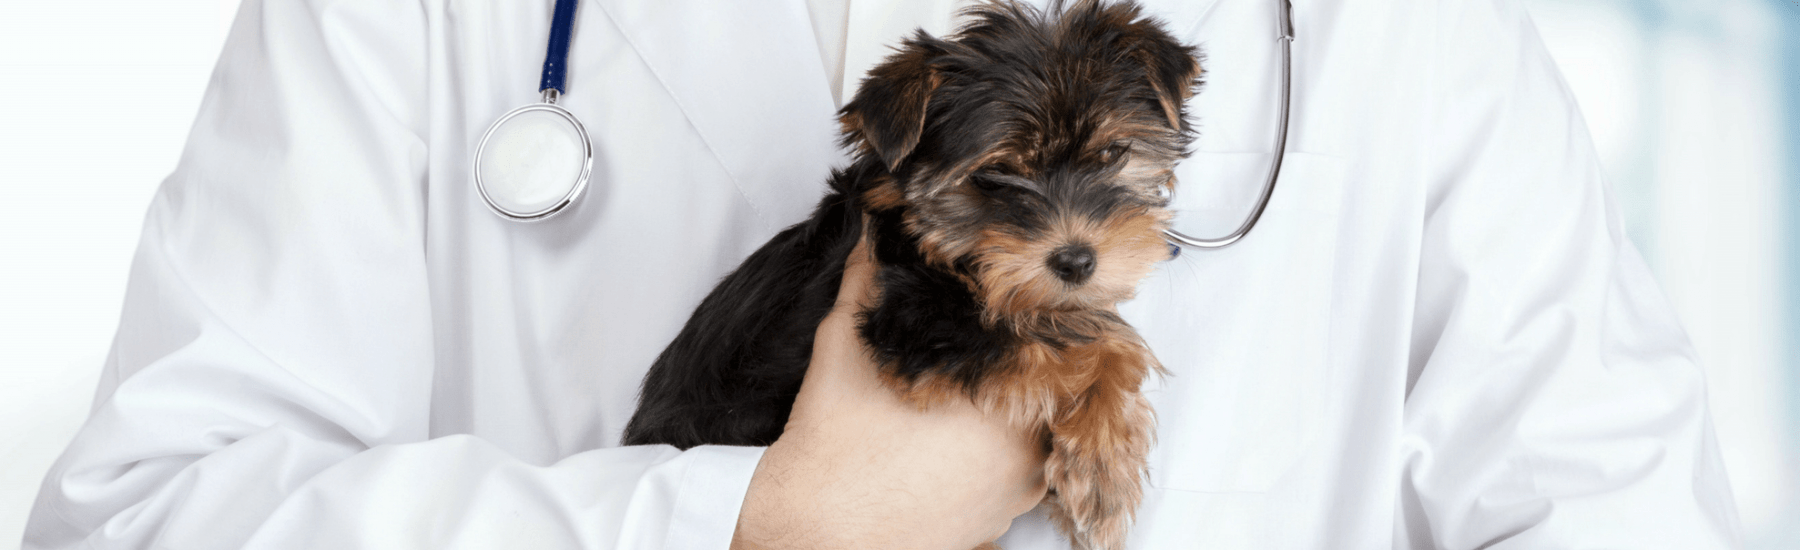 A small Yorkie dog held by a veterinarian